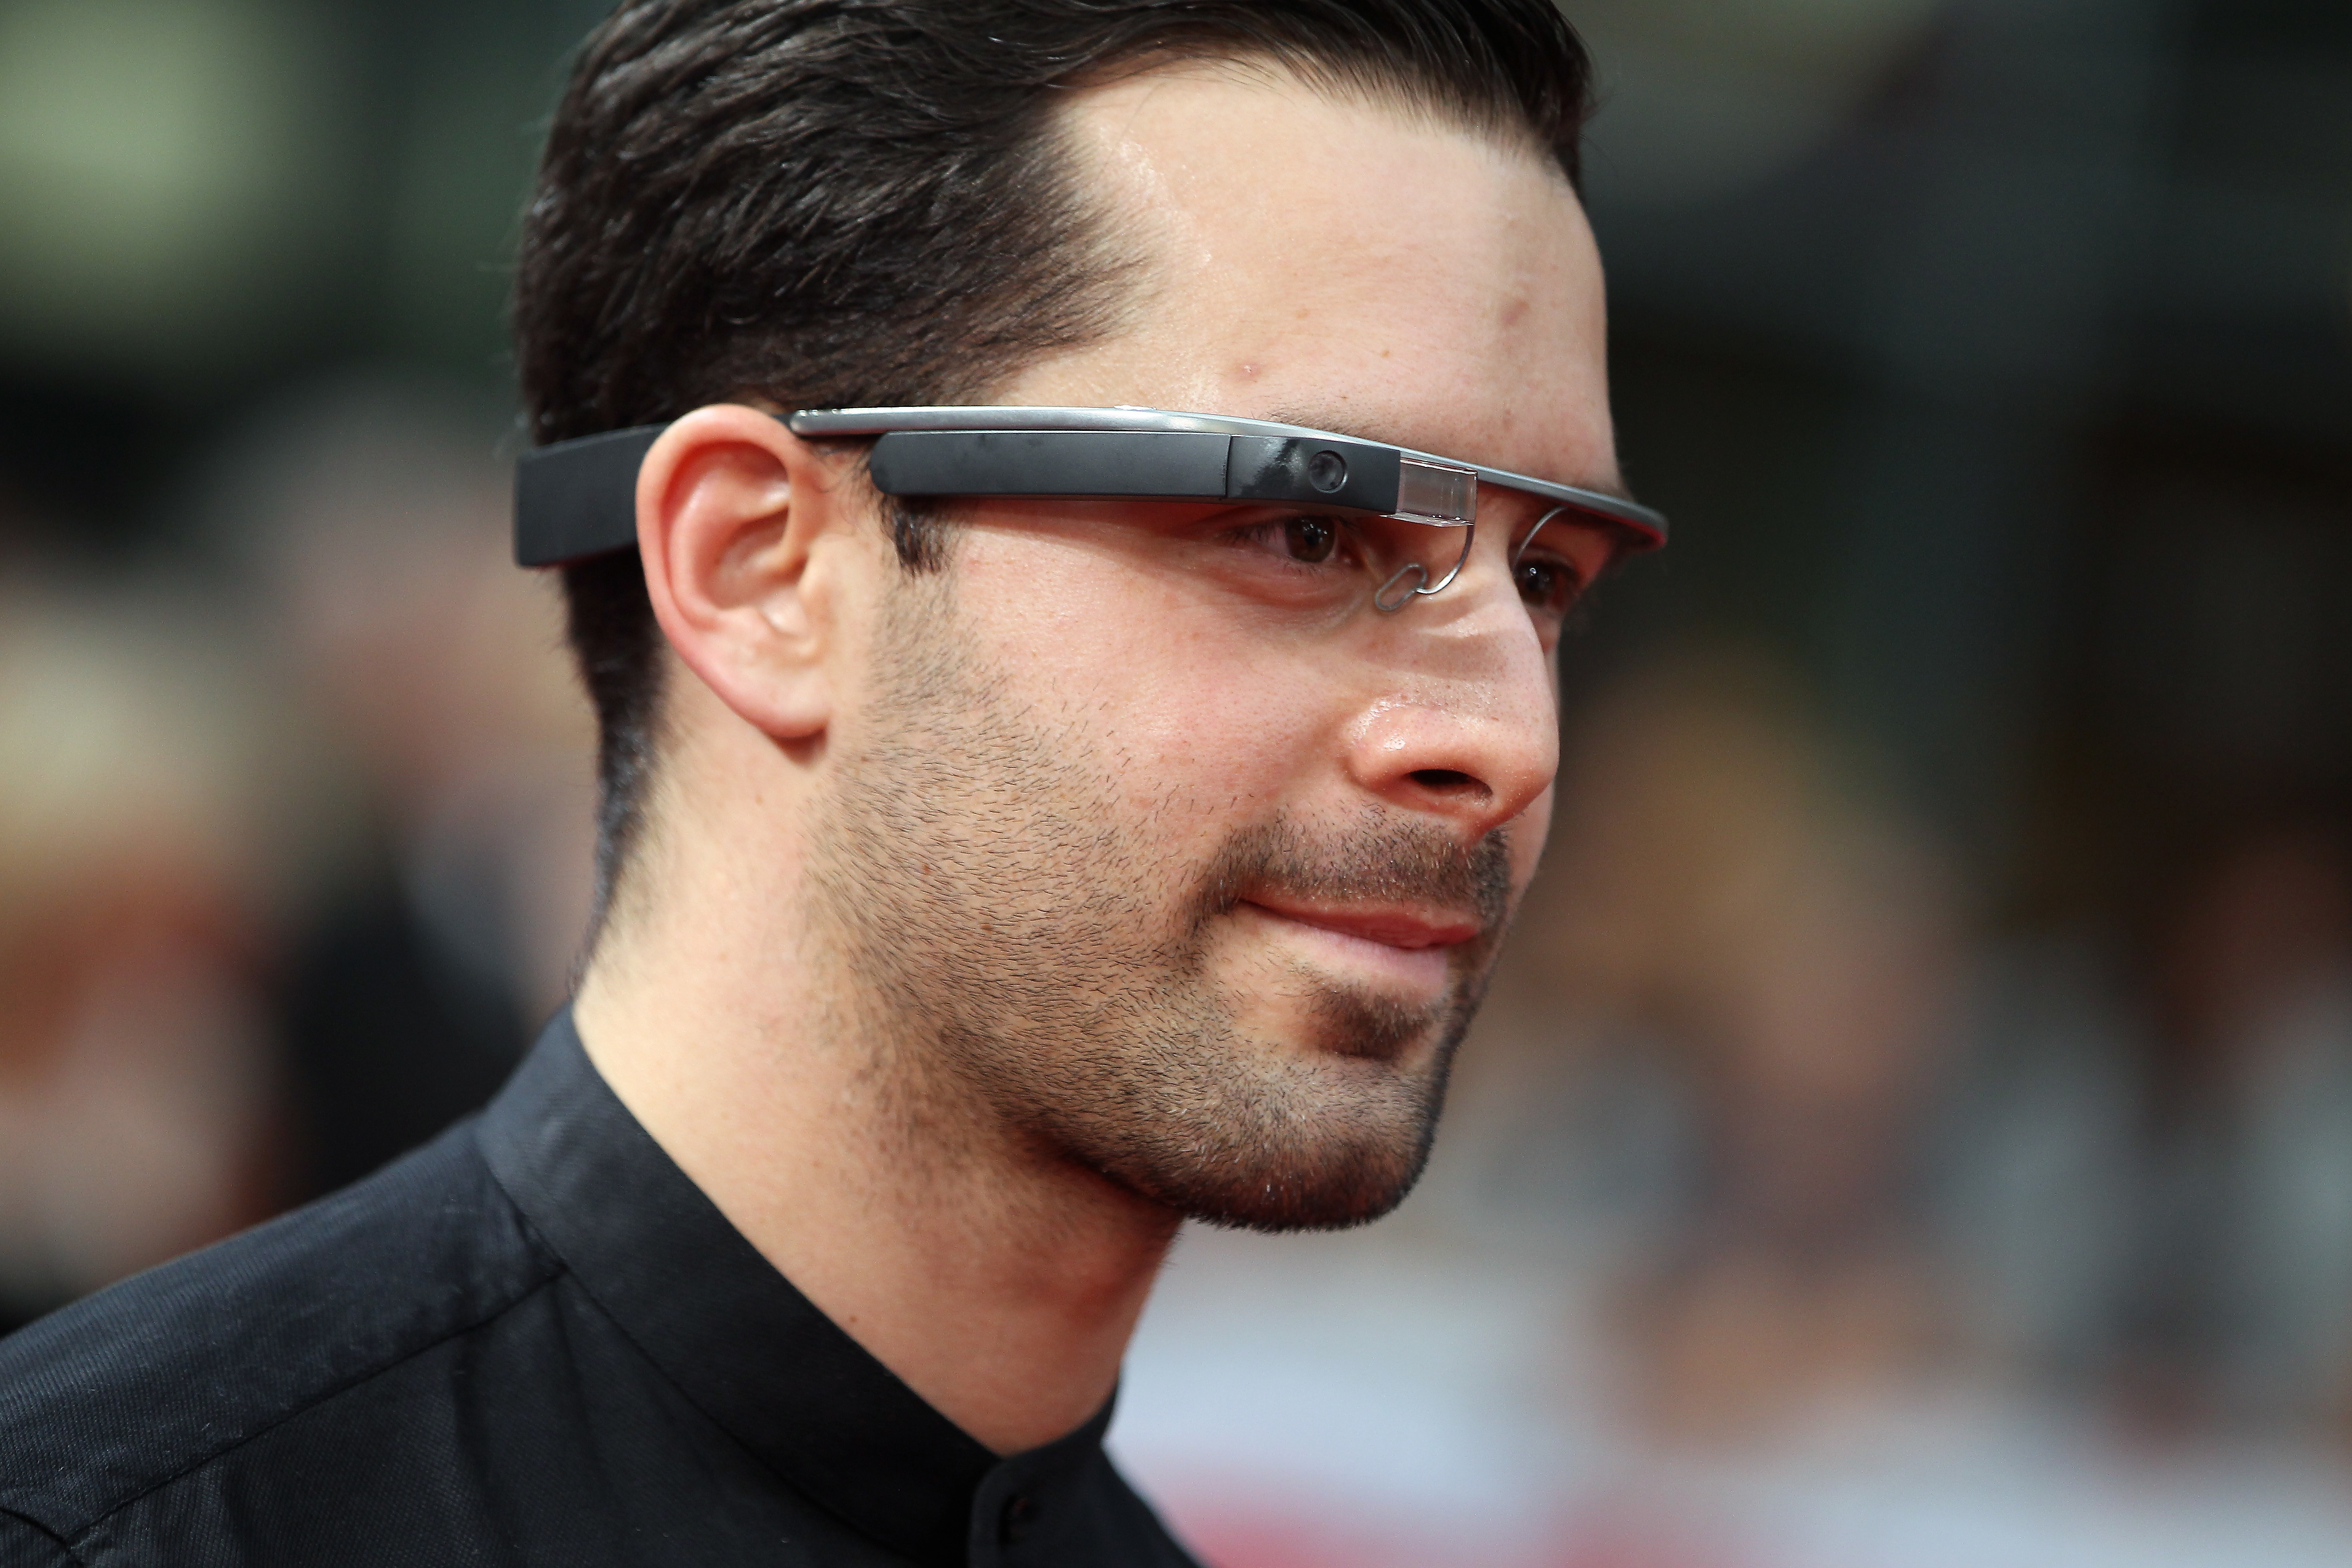 Google Glass was a terrible accessory.